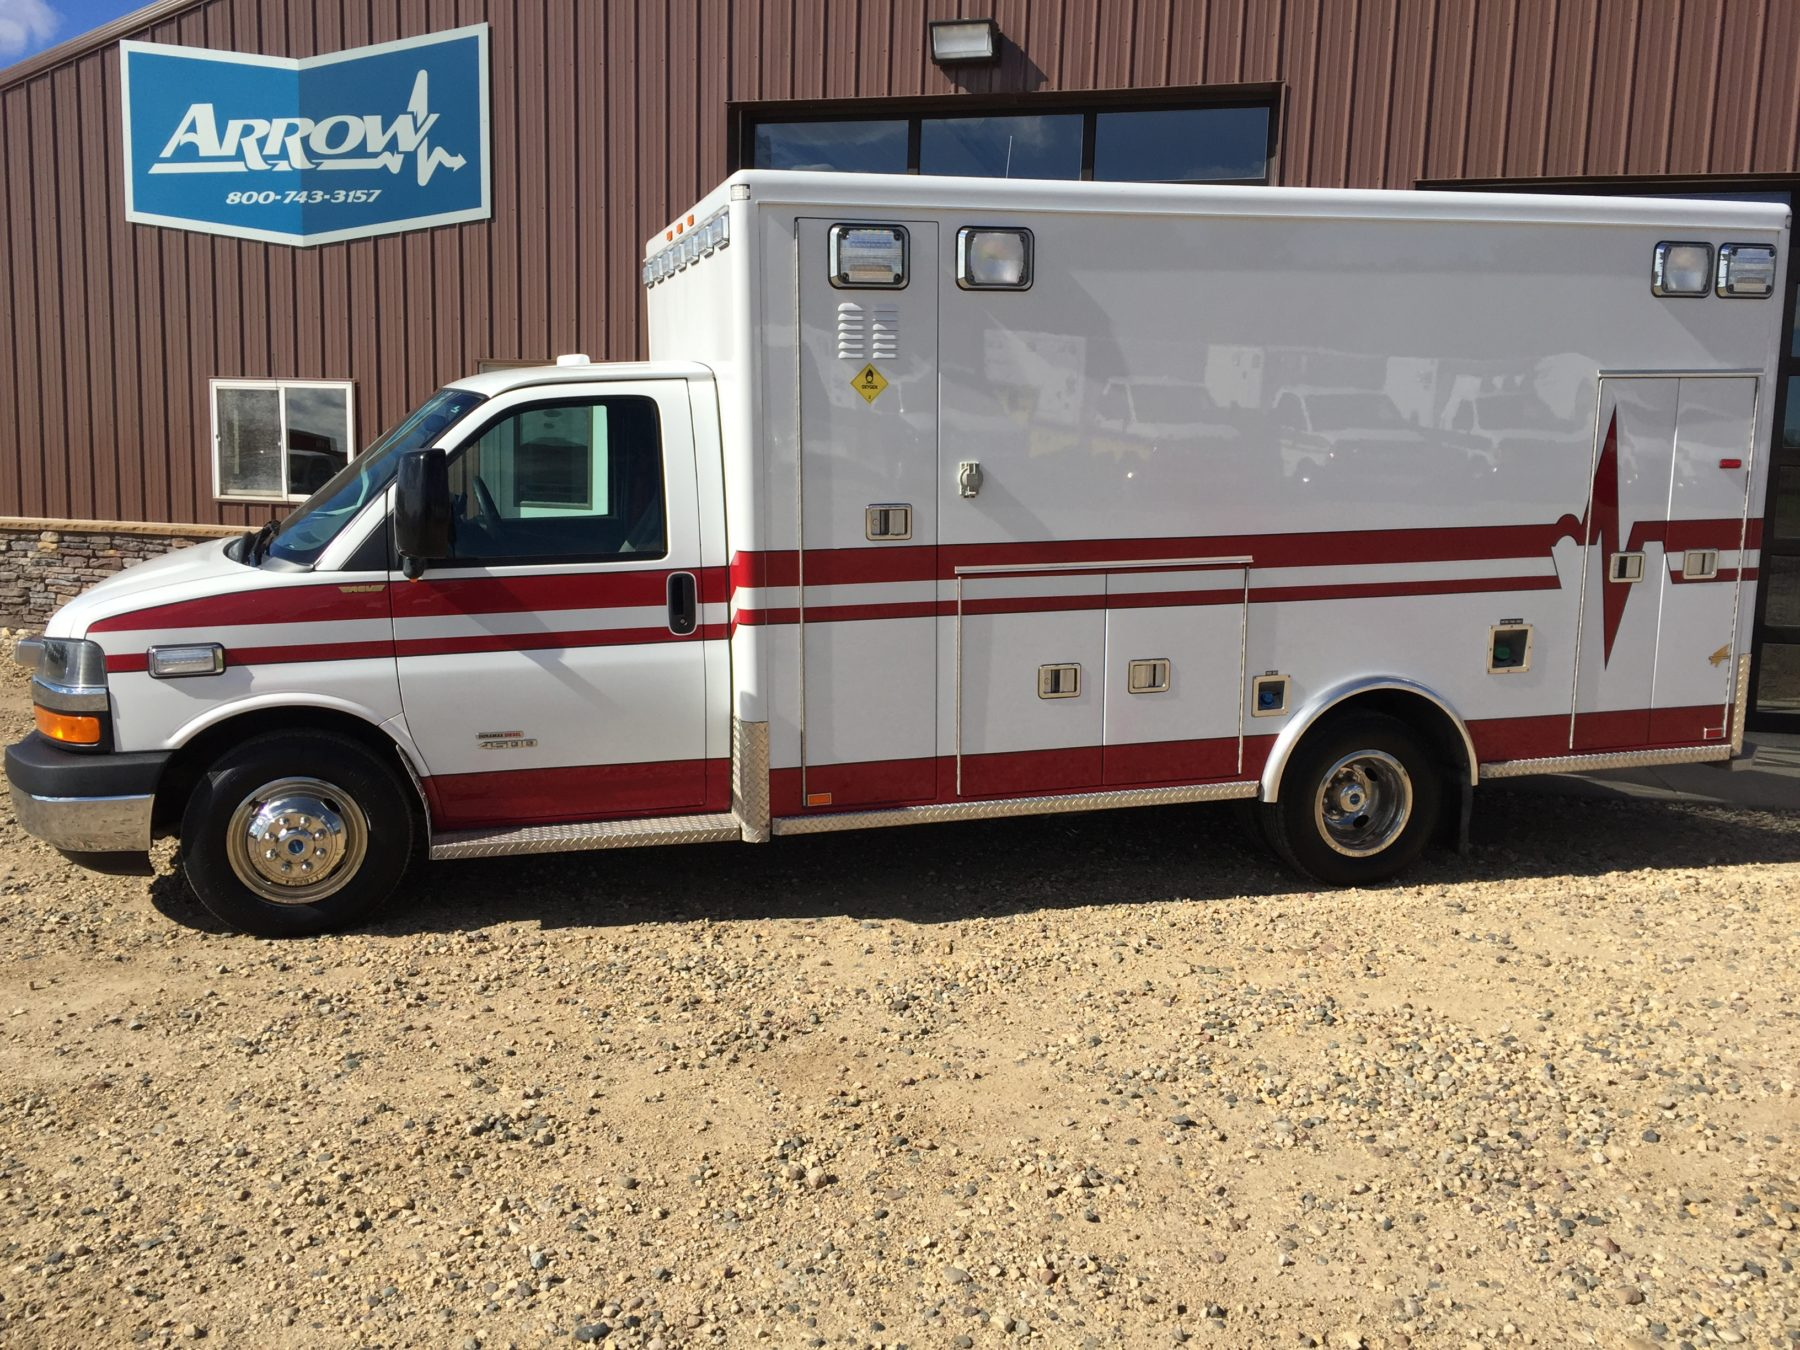 Truck # 70096 - 2013 Chevrolet G4500 Type 3 AEV Ambulance